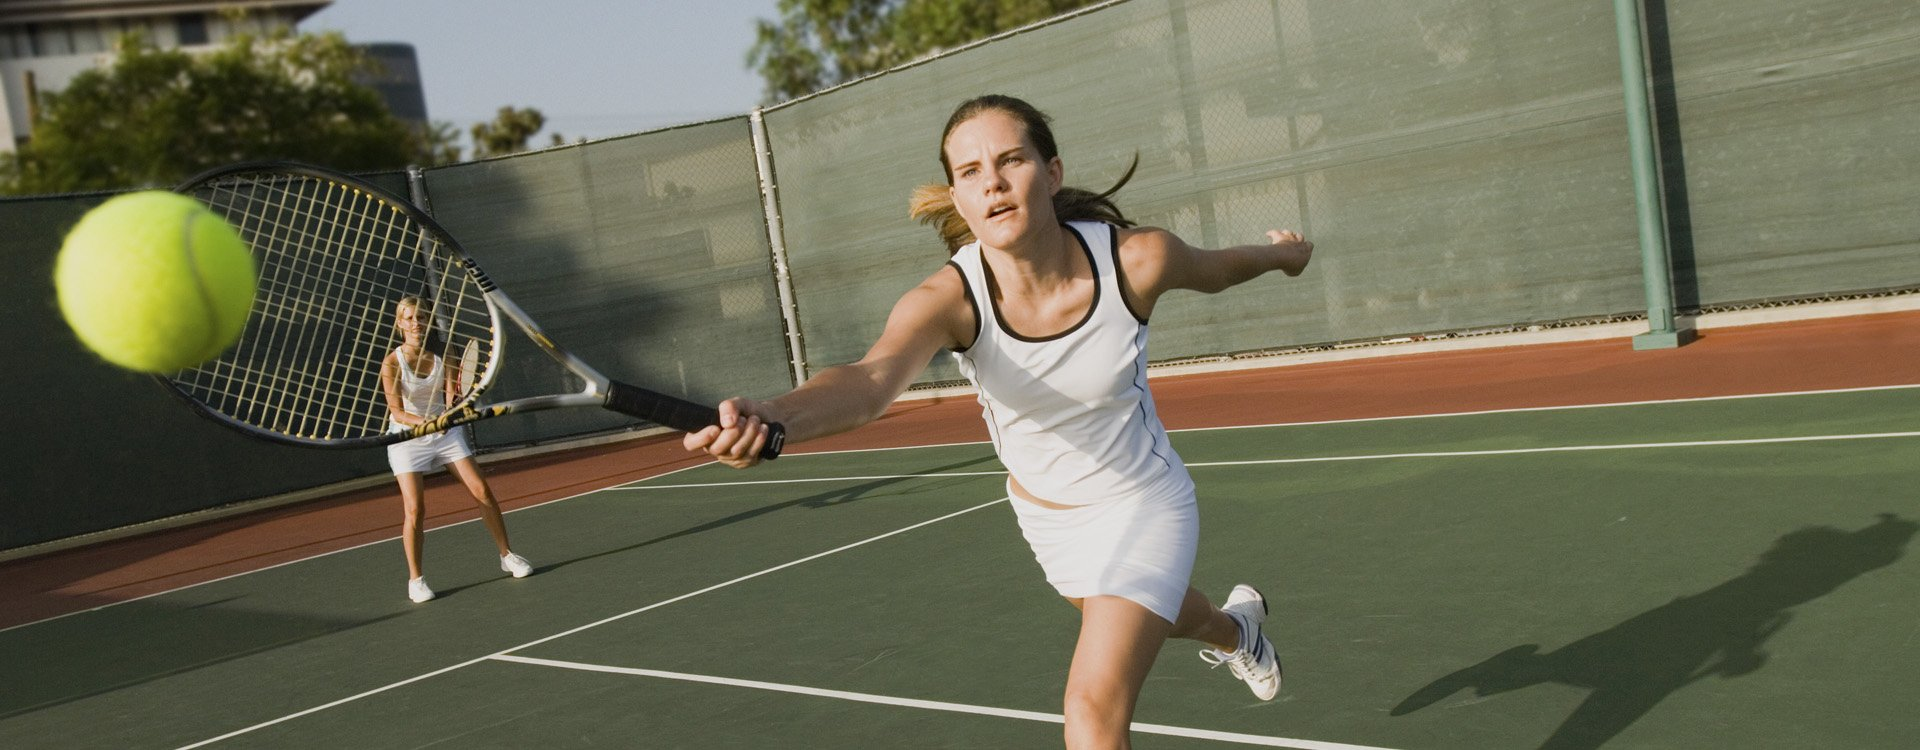 How HIIT Training Can Help You Improve at Tennis